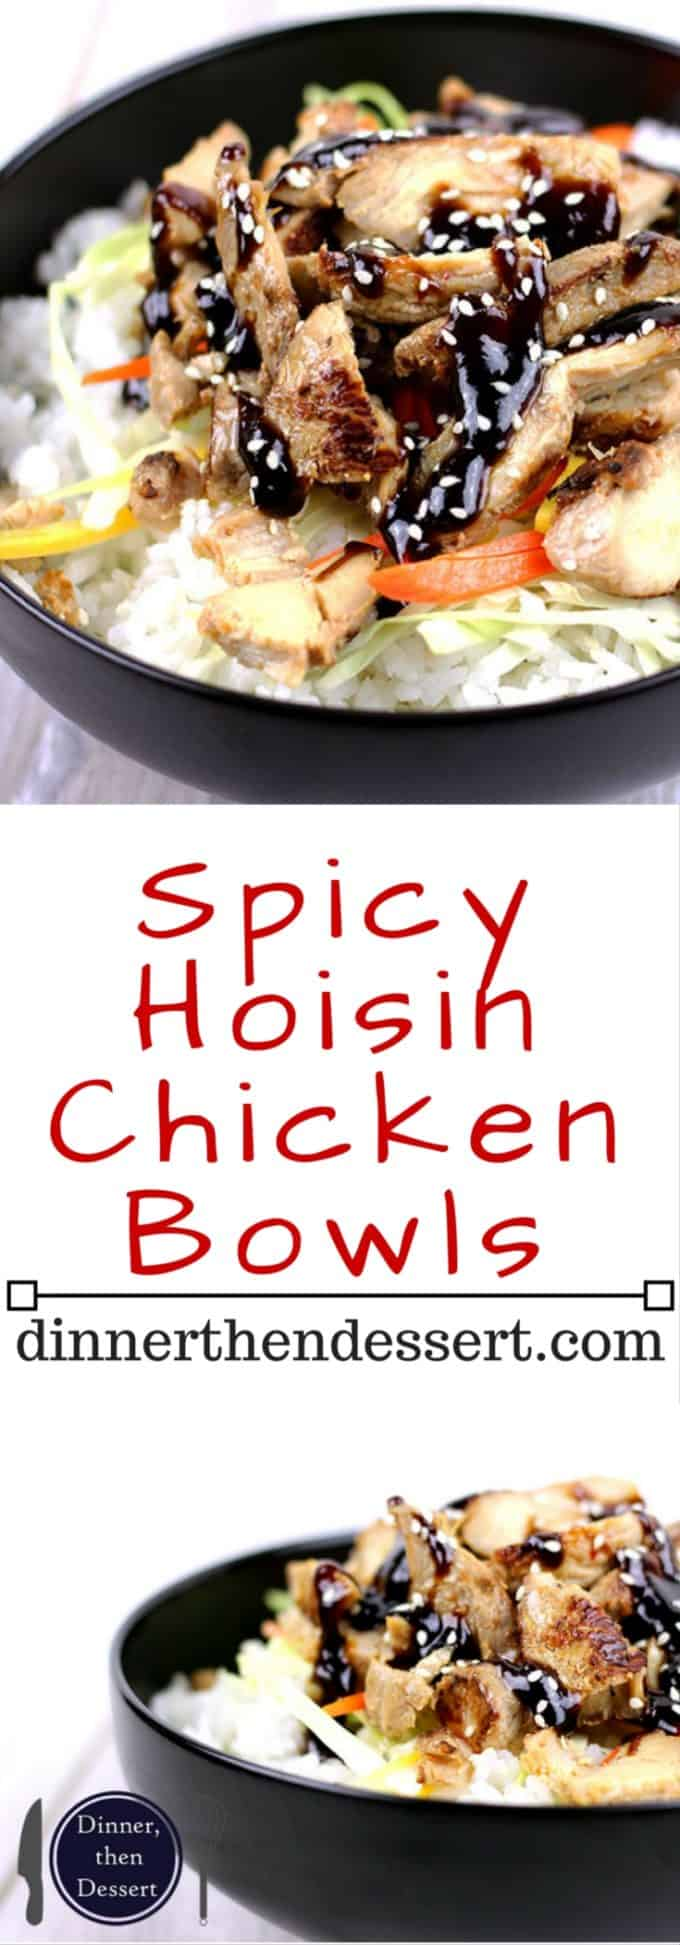 Spicy hoisin topped marinated Asian chicken is served over wilted cabbage, carrots and sticky rice in a quick weeknight meal that is sure to please your palate, your busy night and your need for a healthy meal!